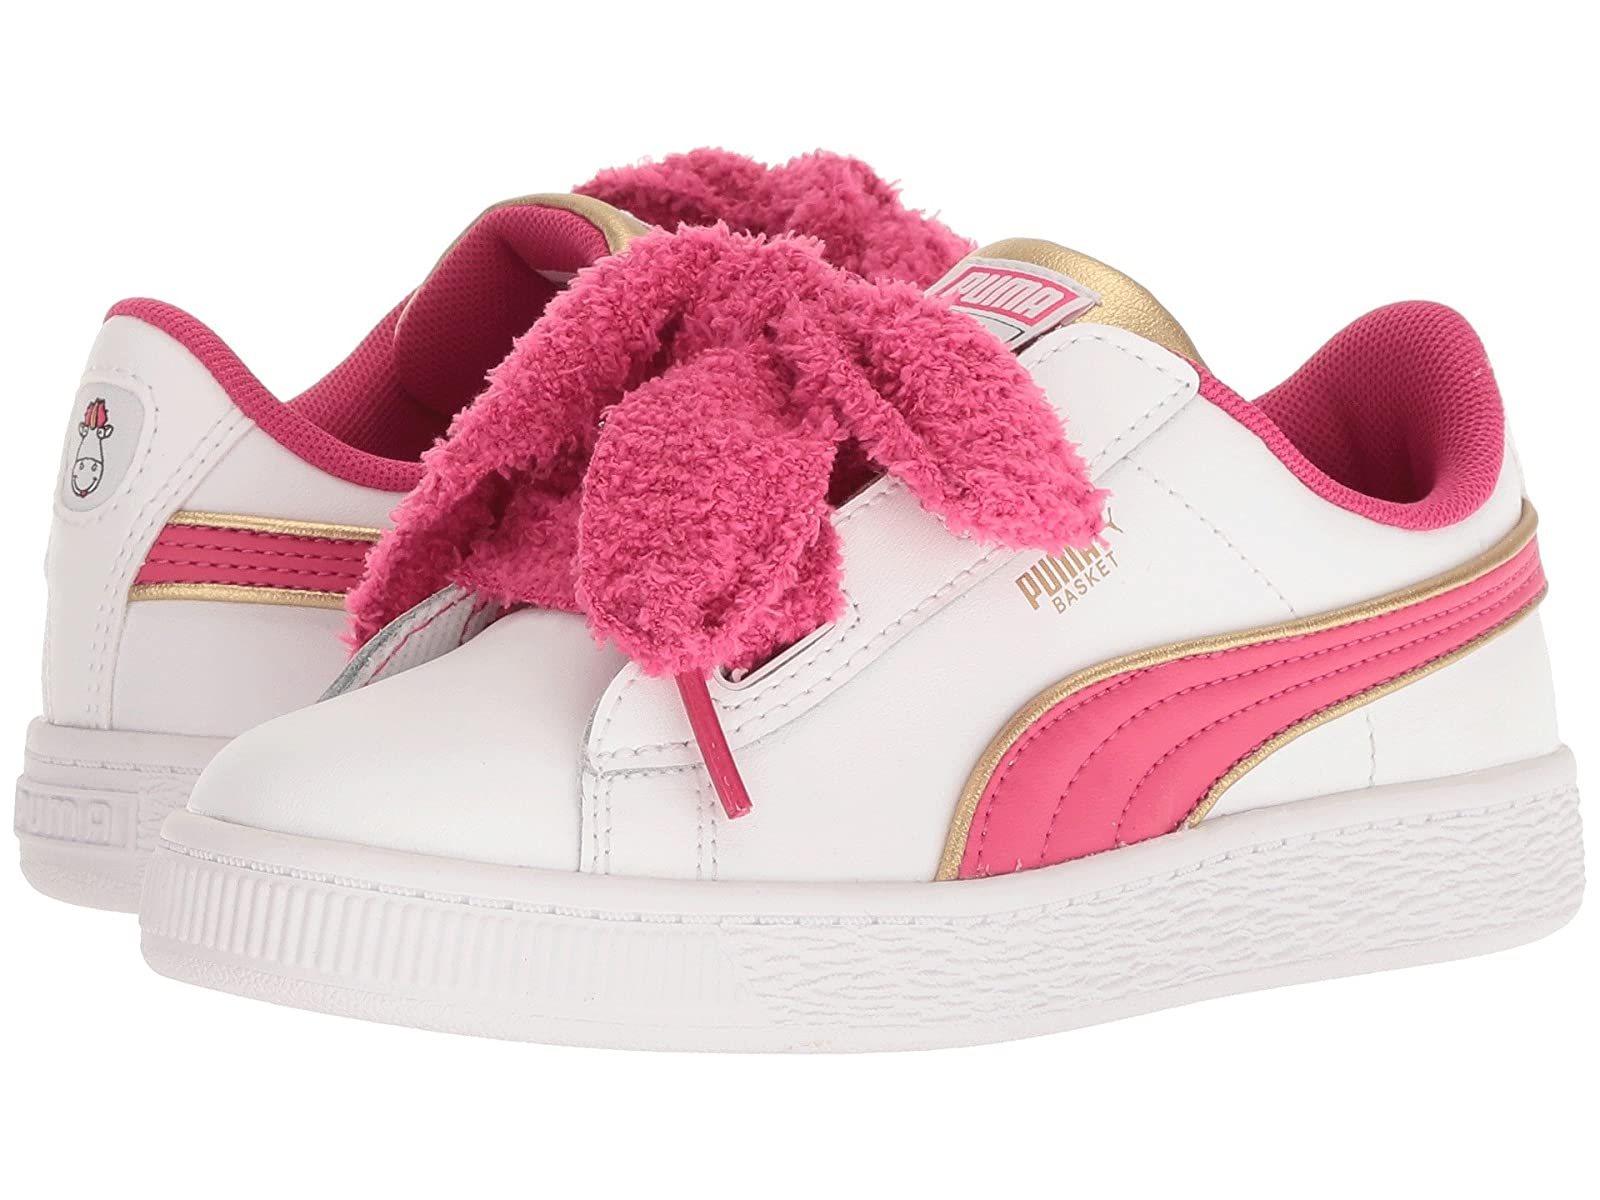 Puma Kids Minions Basket Heart Fluffy PS (Little Kid/Big Kid)Atmospheric grades have affordable shoes